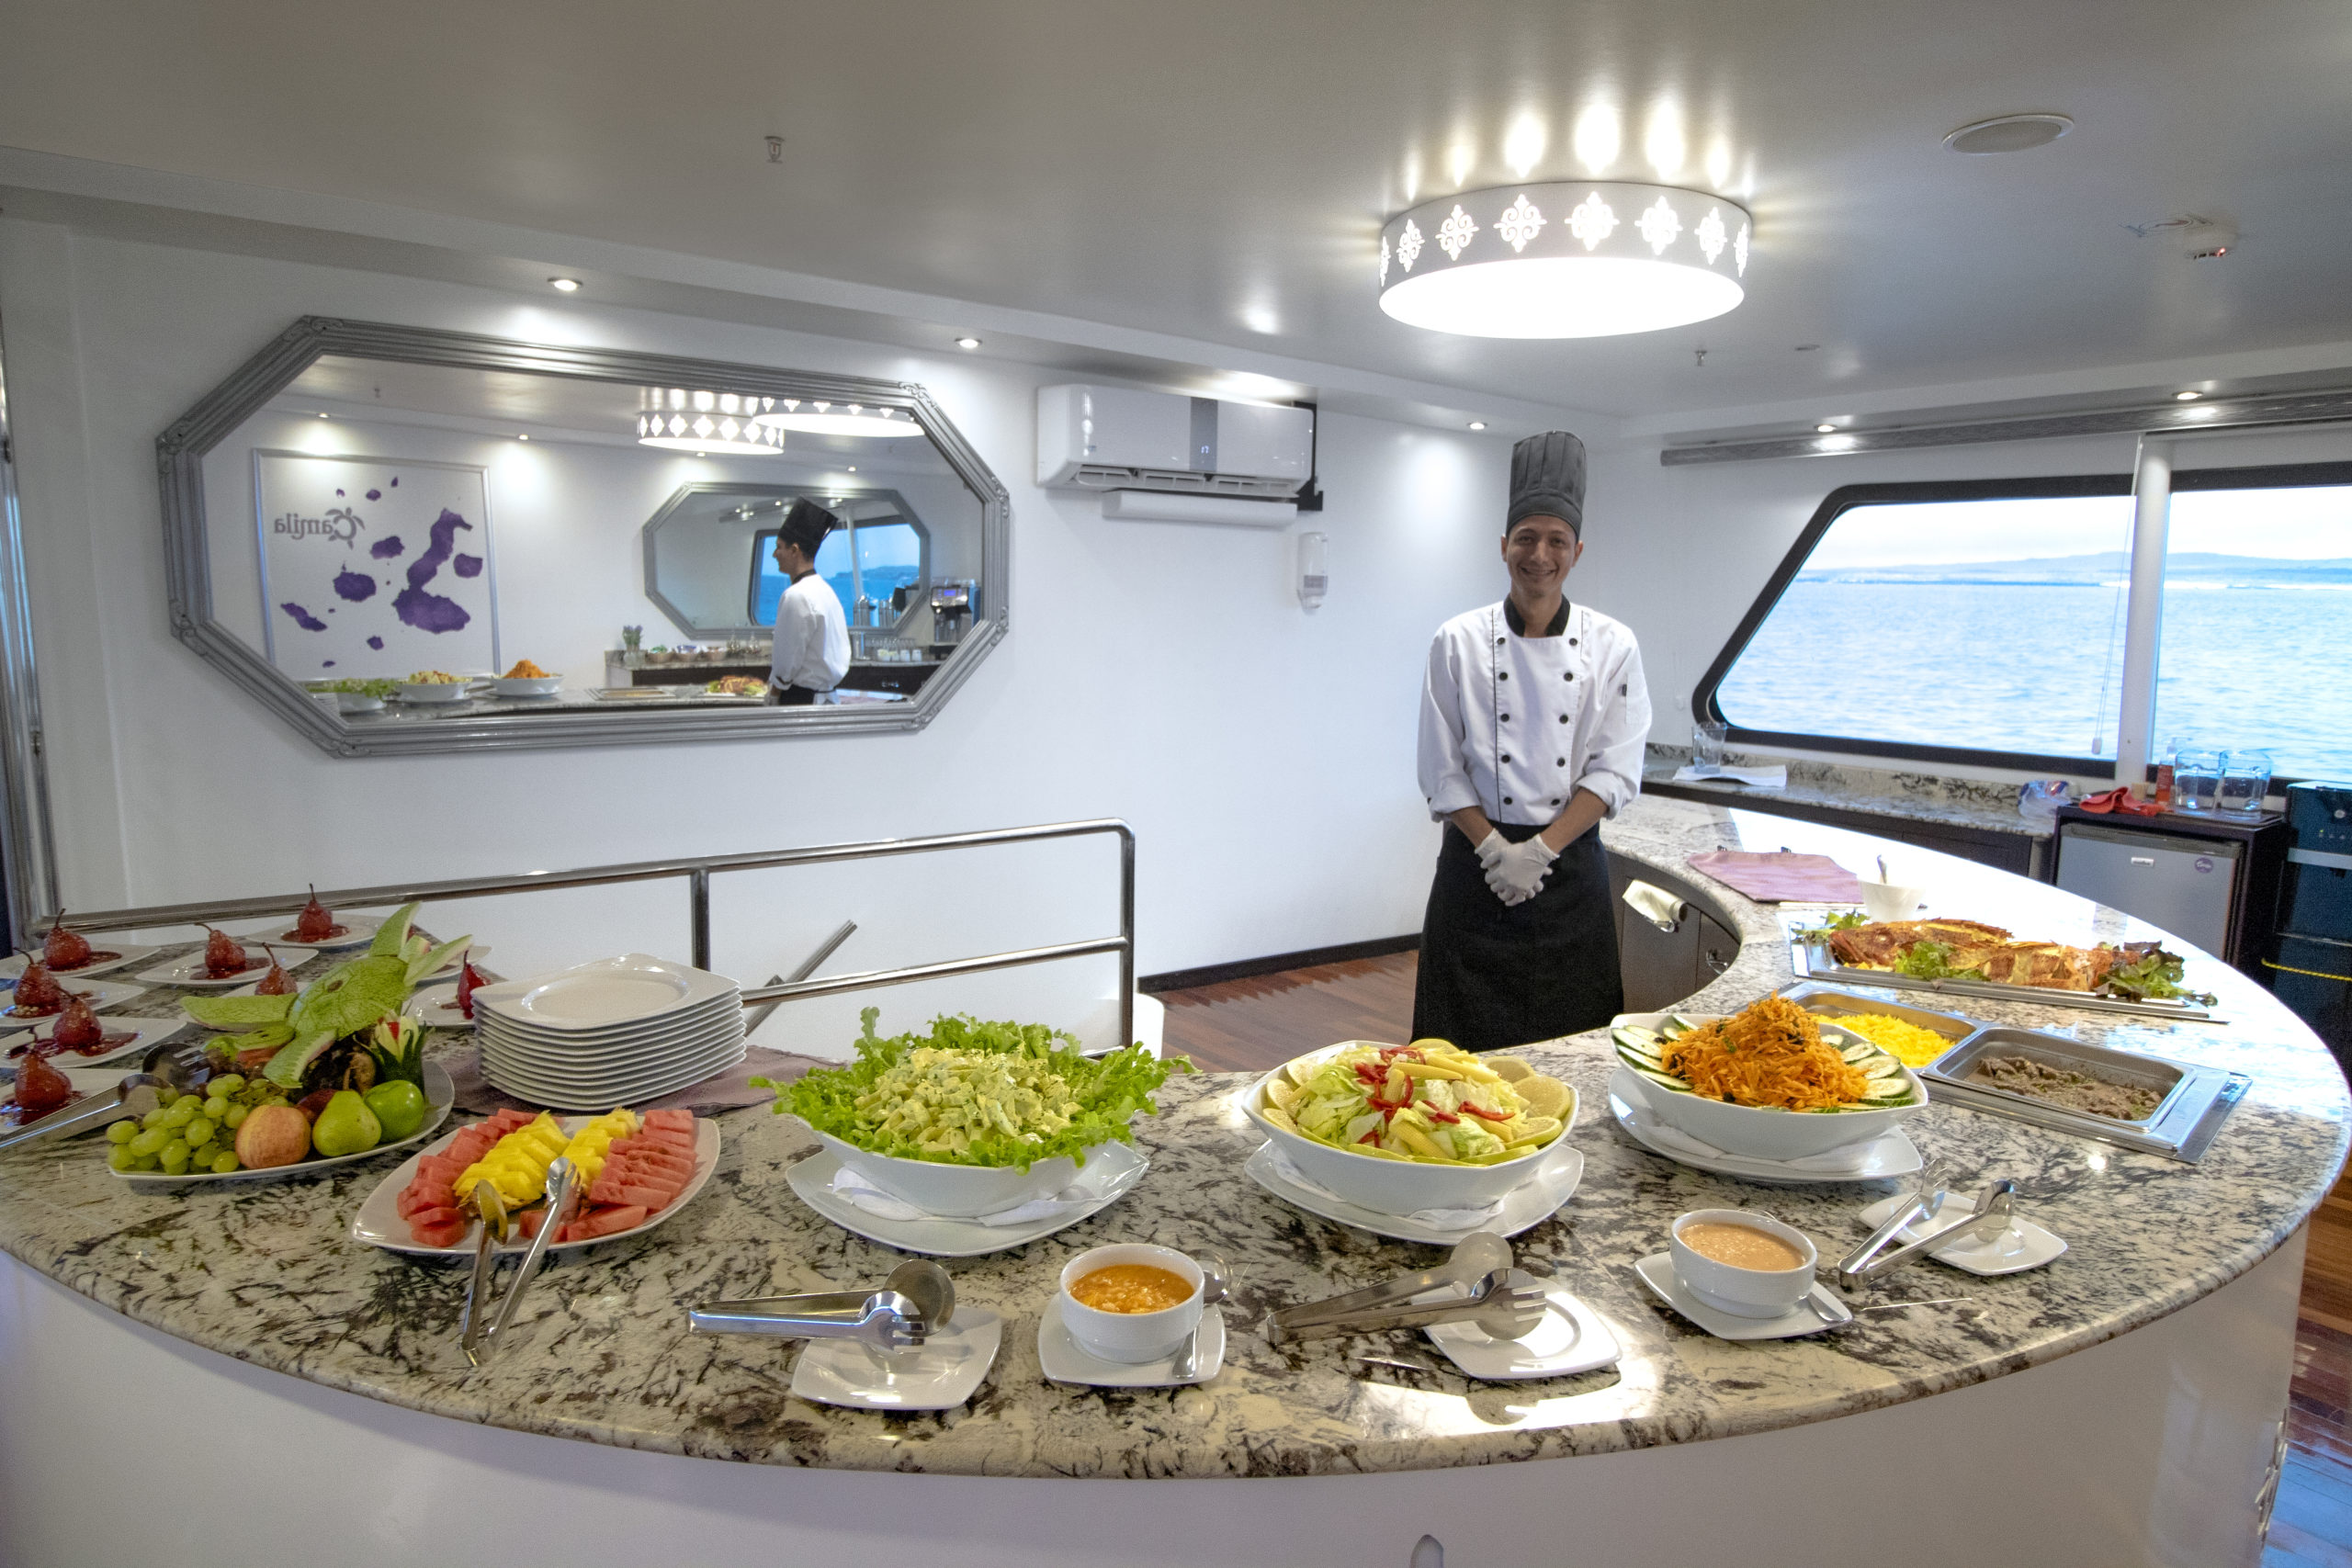 Gourmet meals aboard the Camila Trimaran make for the Finest Galapagos Luxury Experience